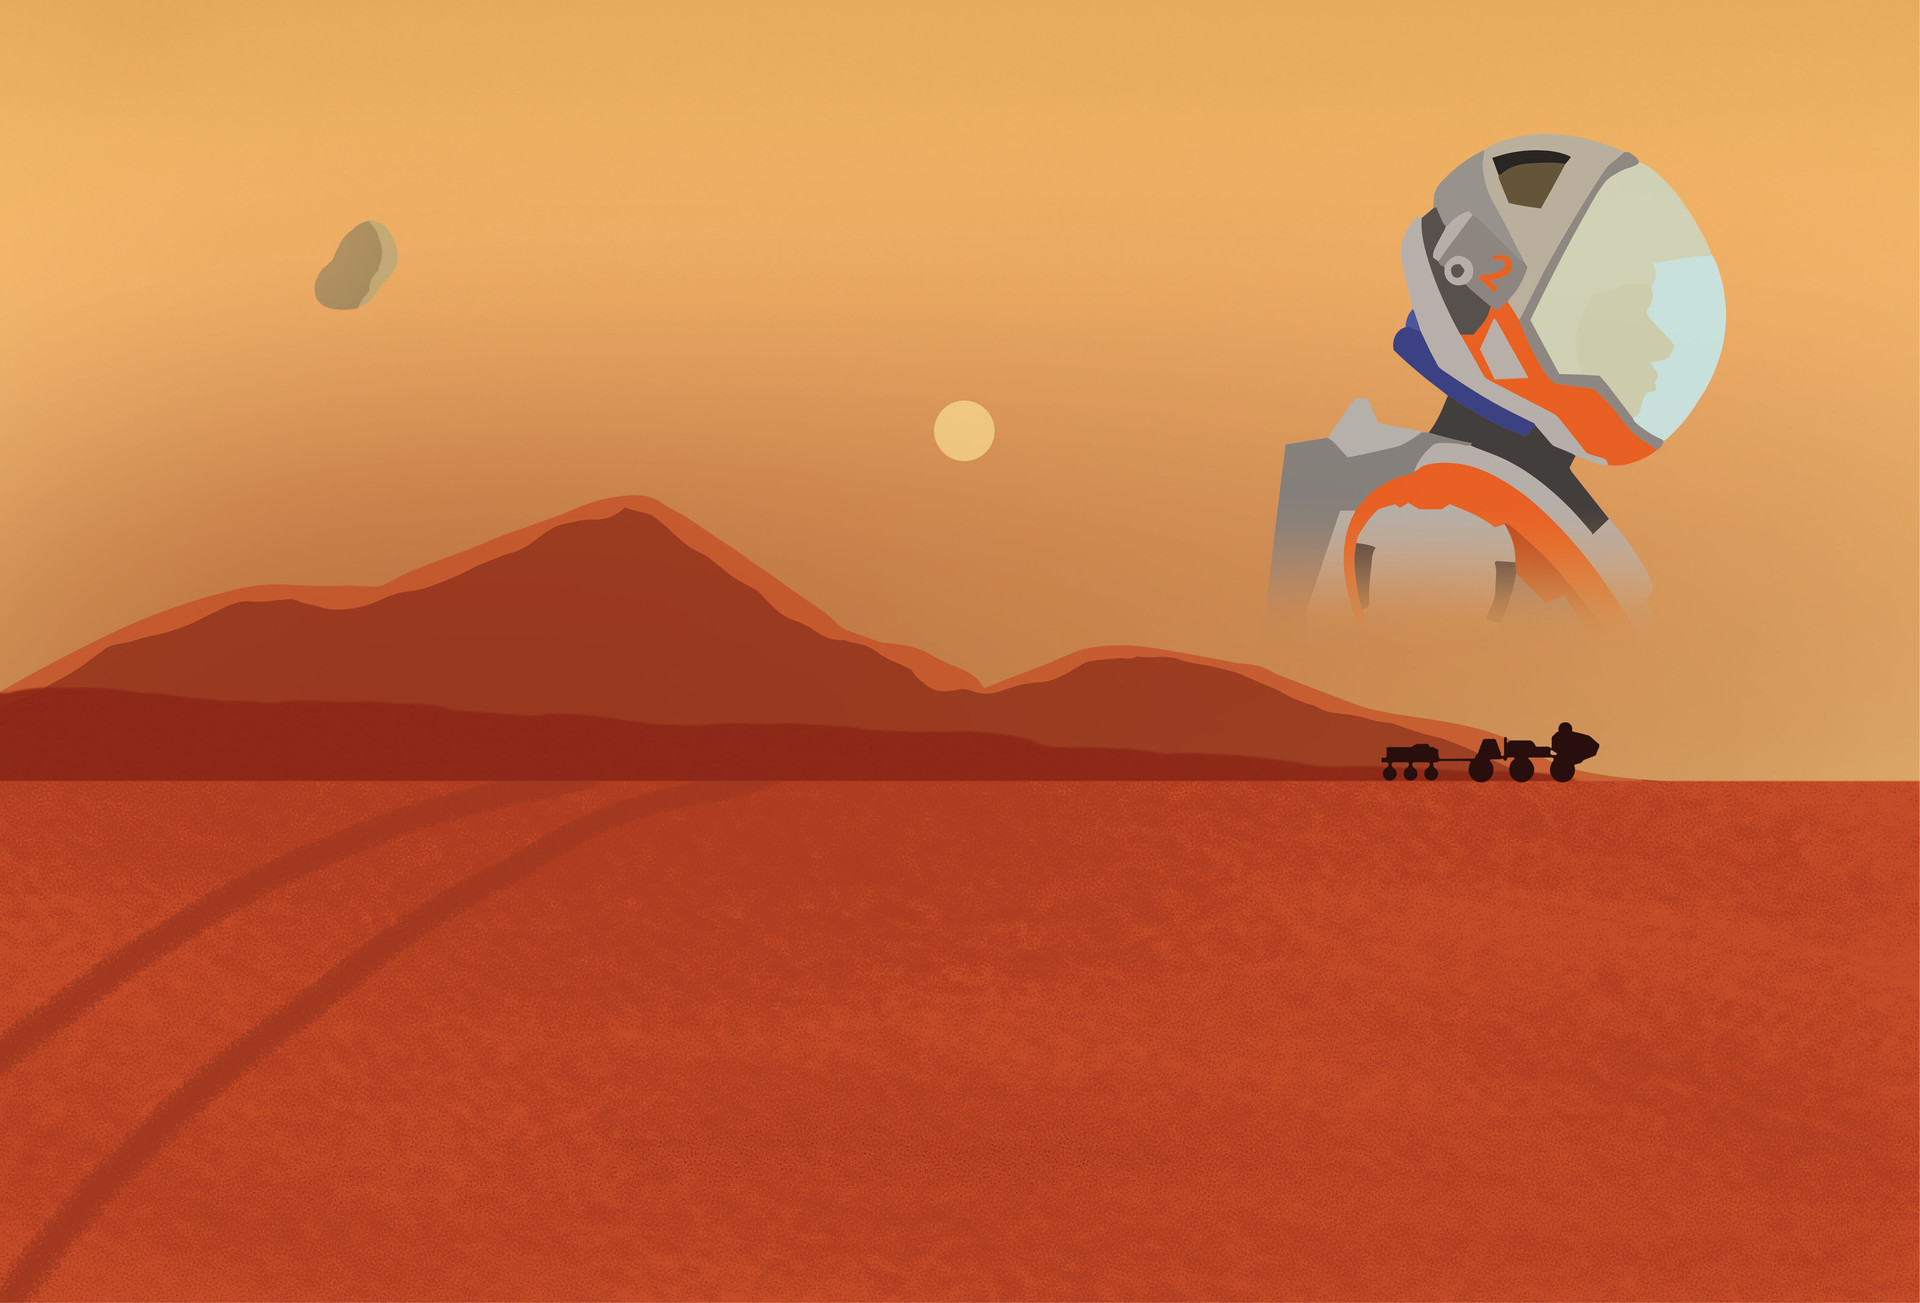 Mathew maddison the martian book cover illustration 01